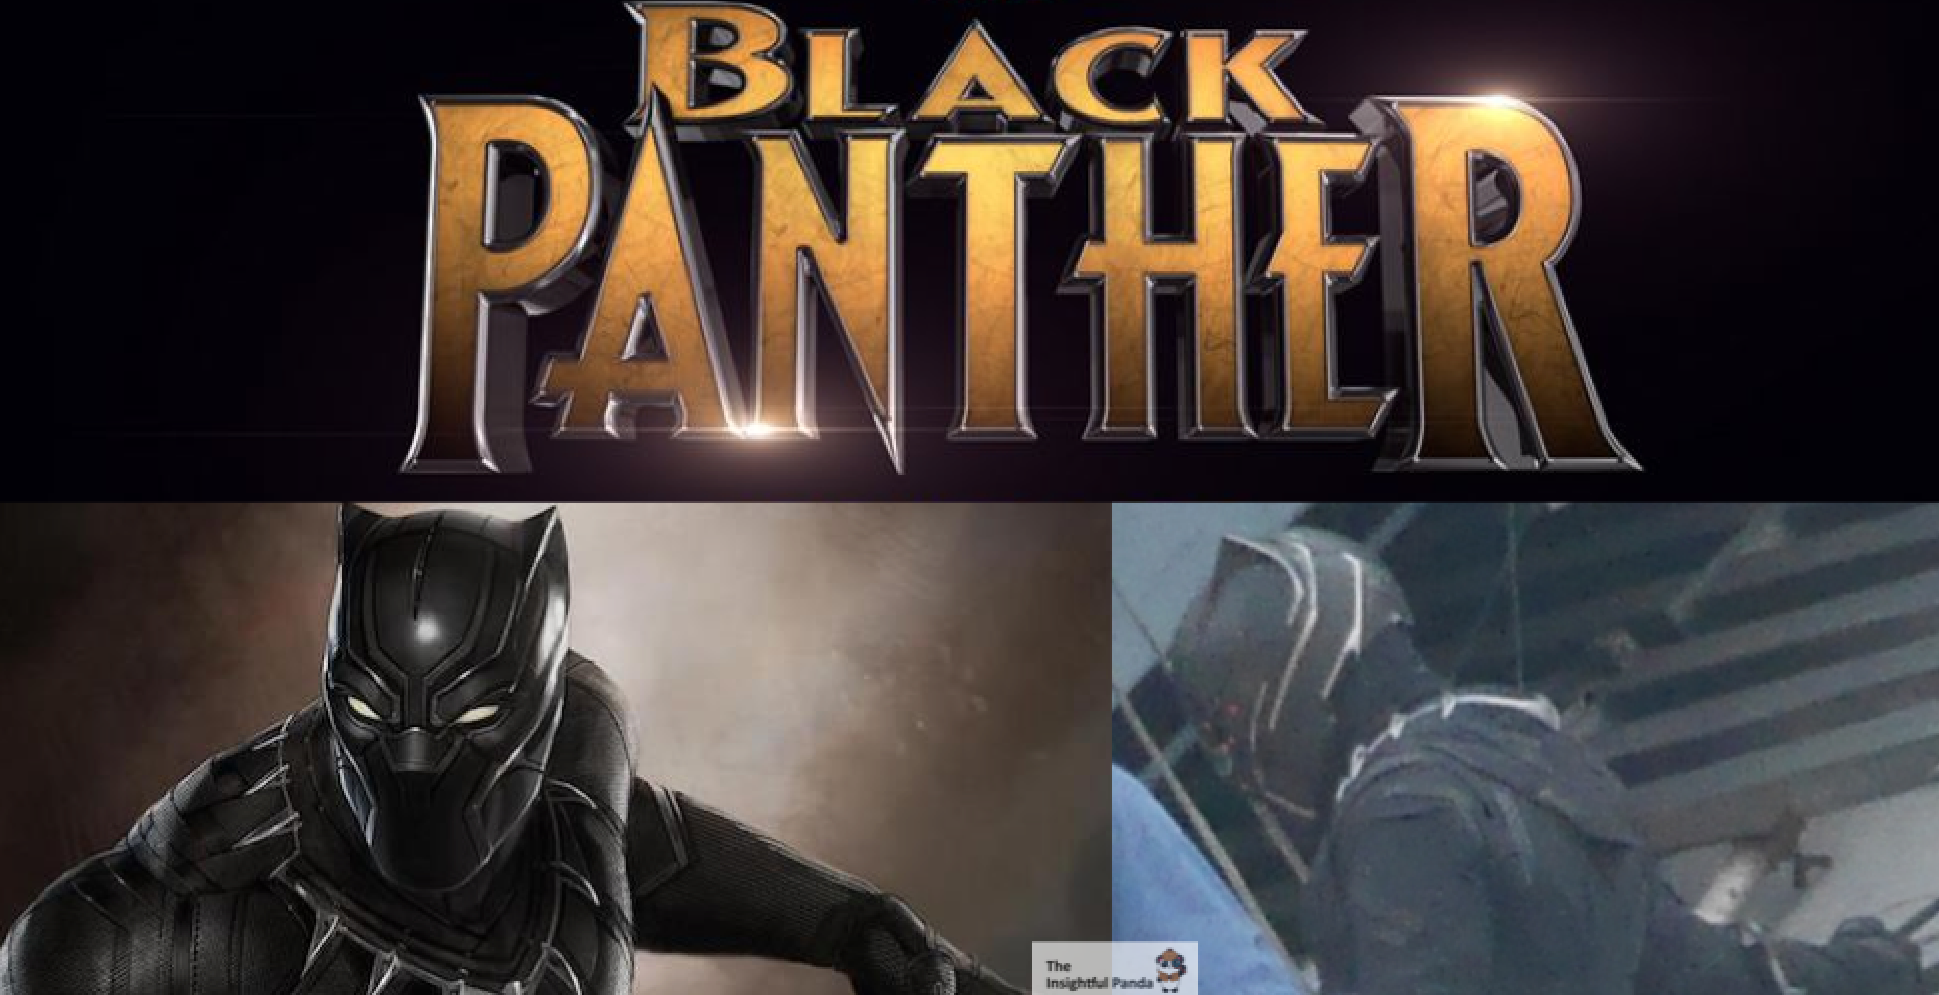 Black Panther Costume U0026 Possible Fight Scenes Revealed | The Insightful Panda